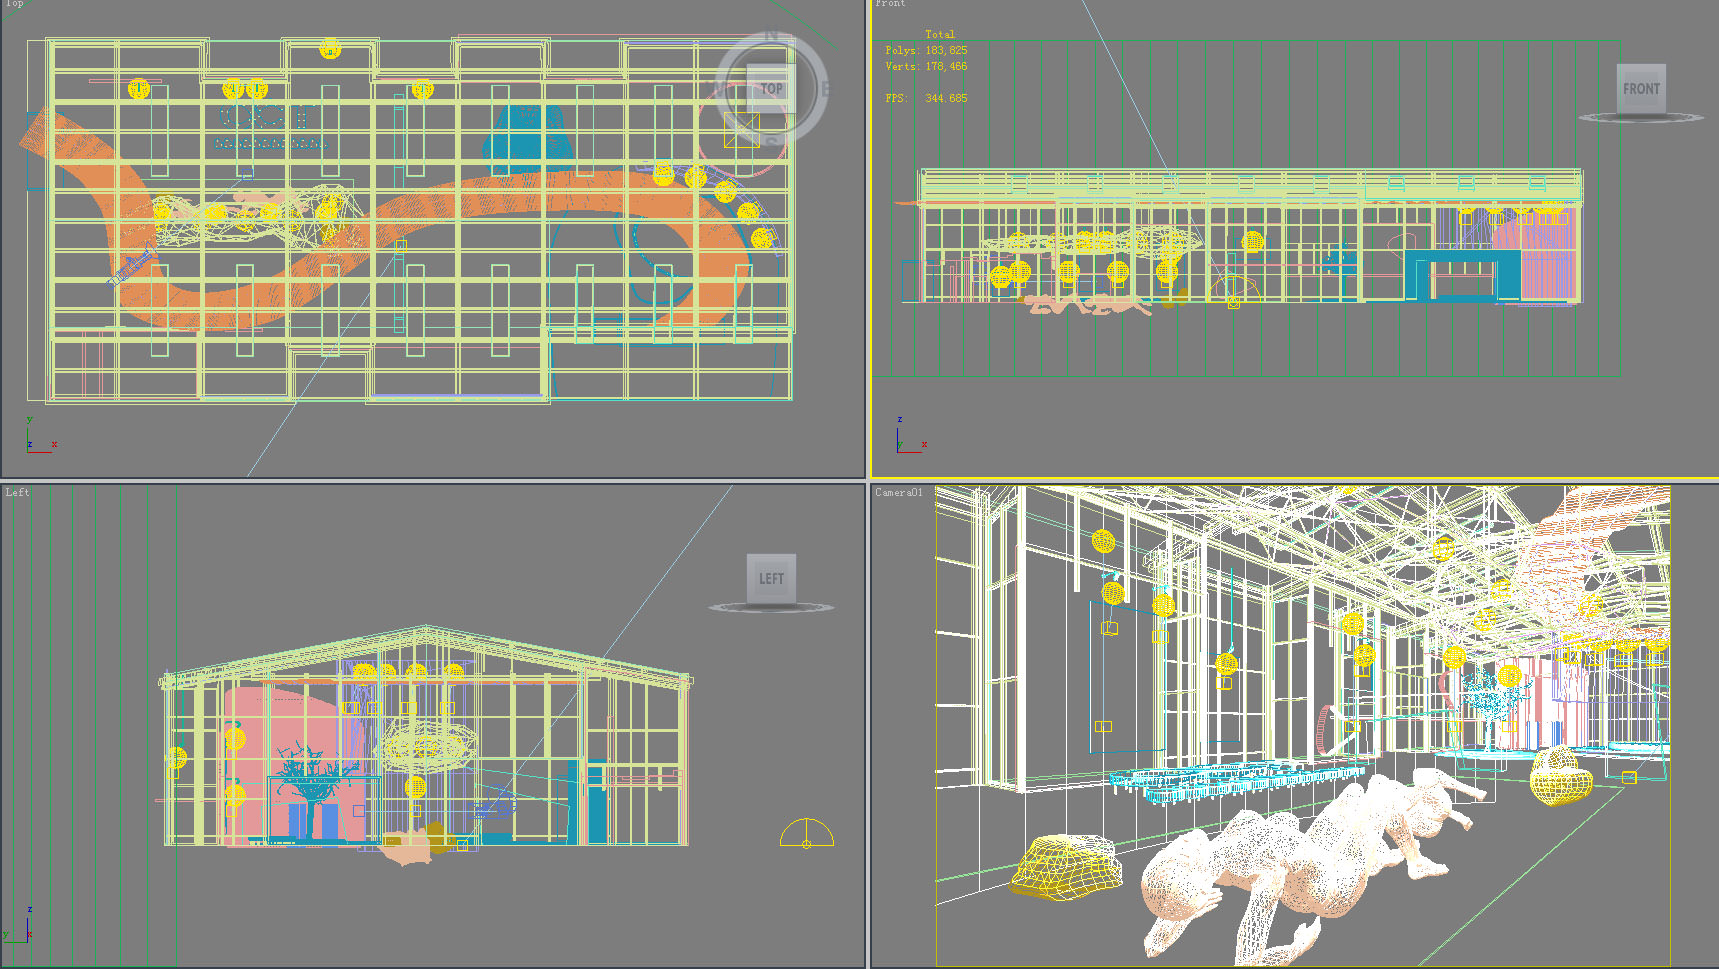 Exhibition Hall D Model : Artistic exhibition hall d model max cgtrader